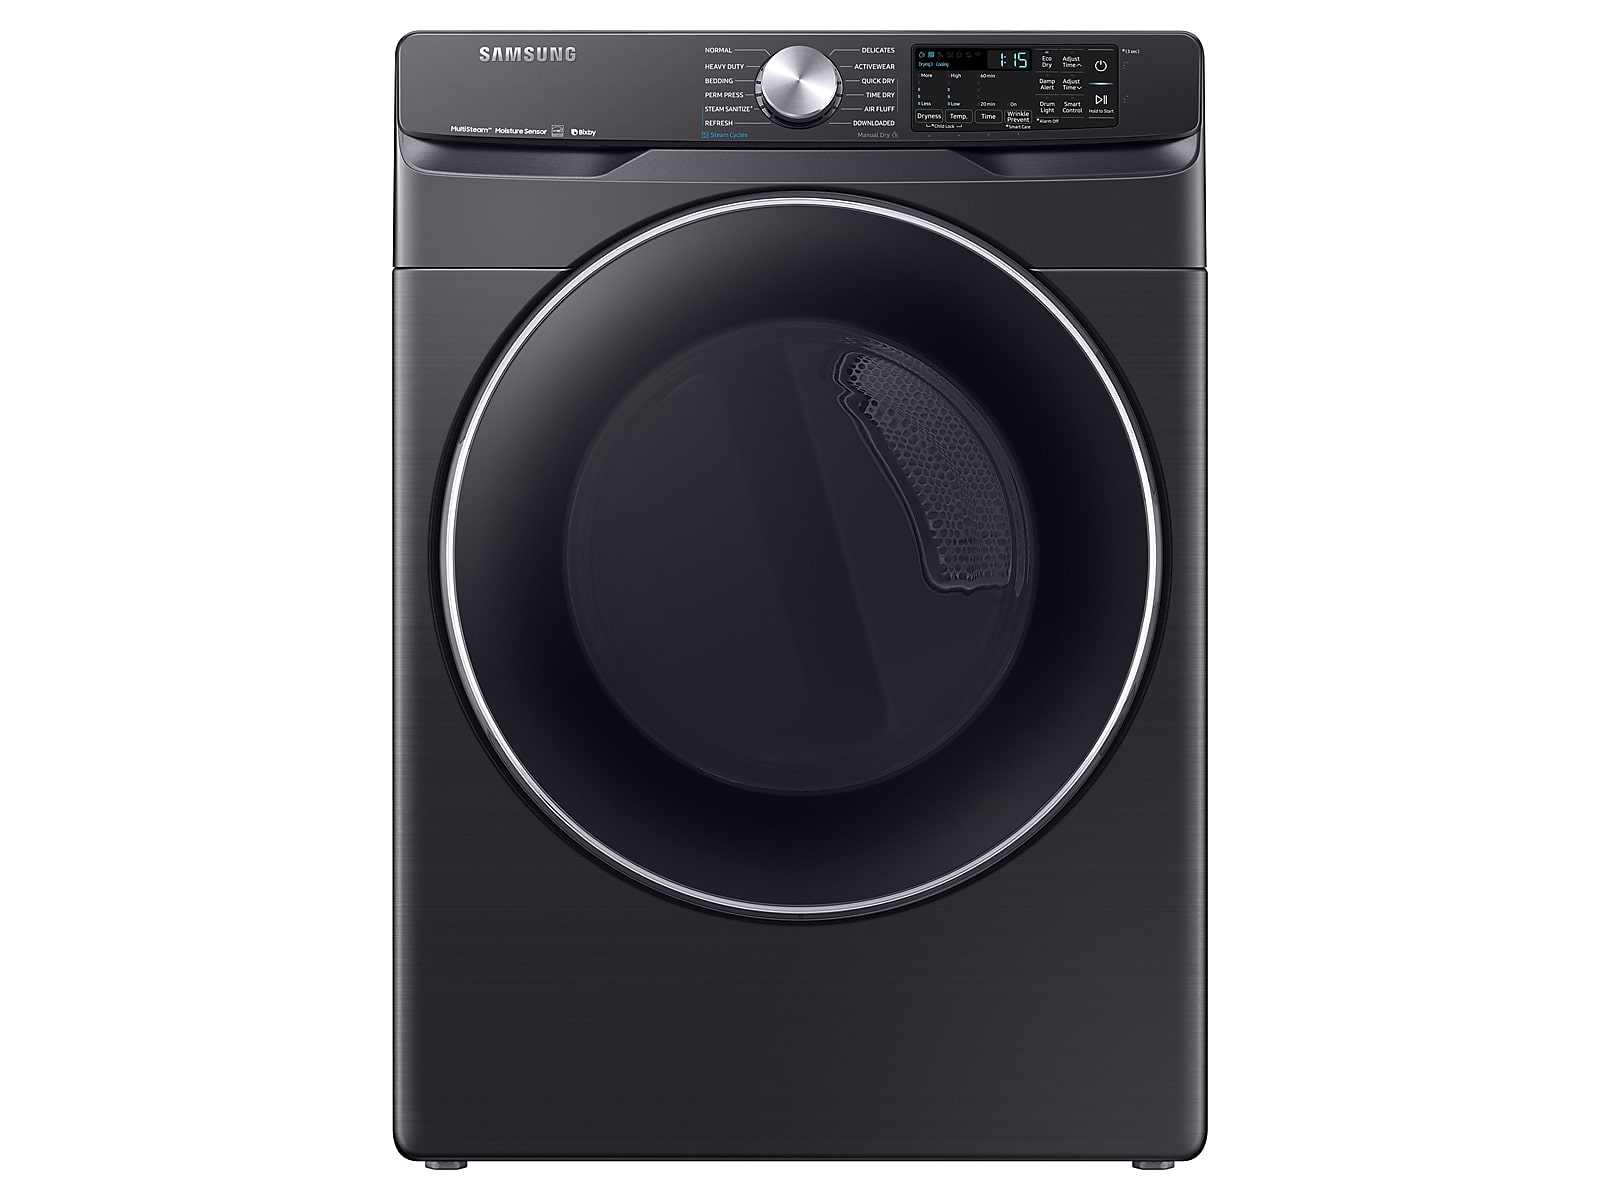 Samsung coupon: Samsung 7.5 cu. ft. Smart Electric Dryer with Steam Sanitize+ in Black Stainless Steel(DVE45R6300V/A3)